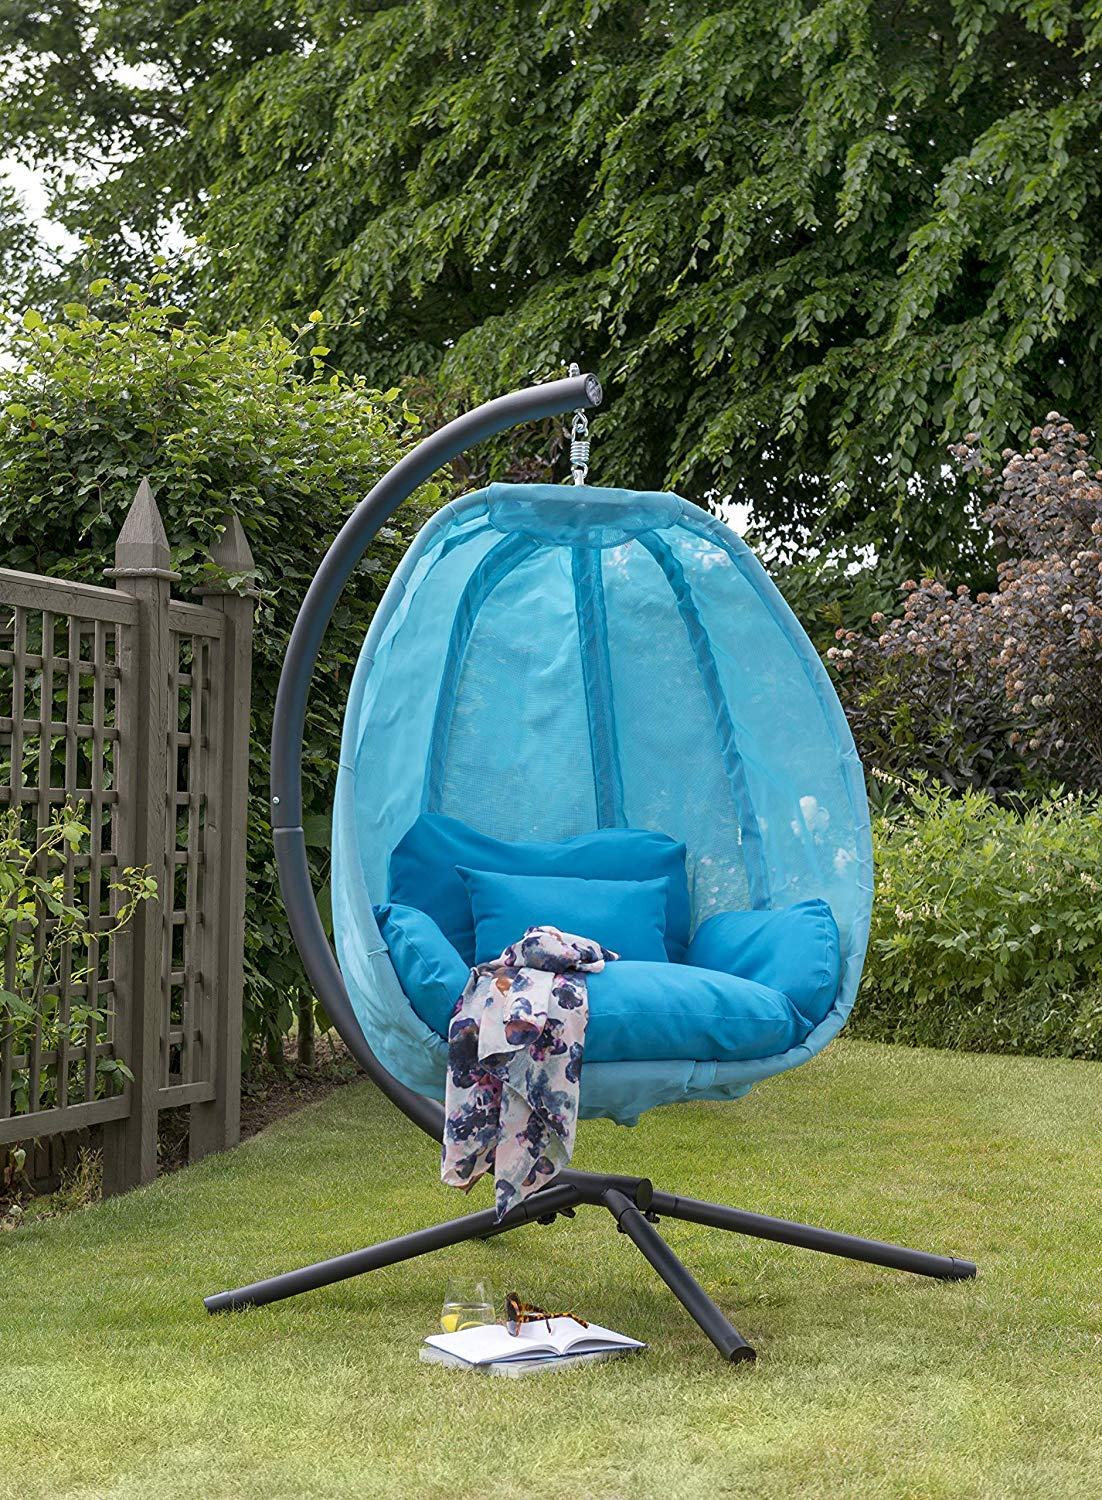 Blue Cocoon Hanging Egg Chair Swing Textilene Garden Furniture In Or